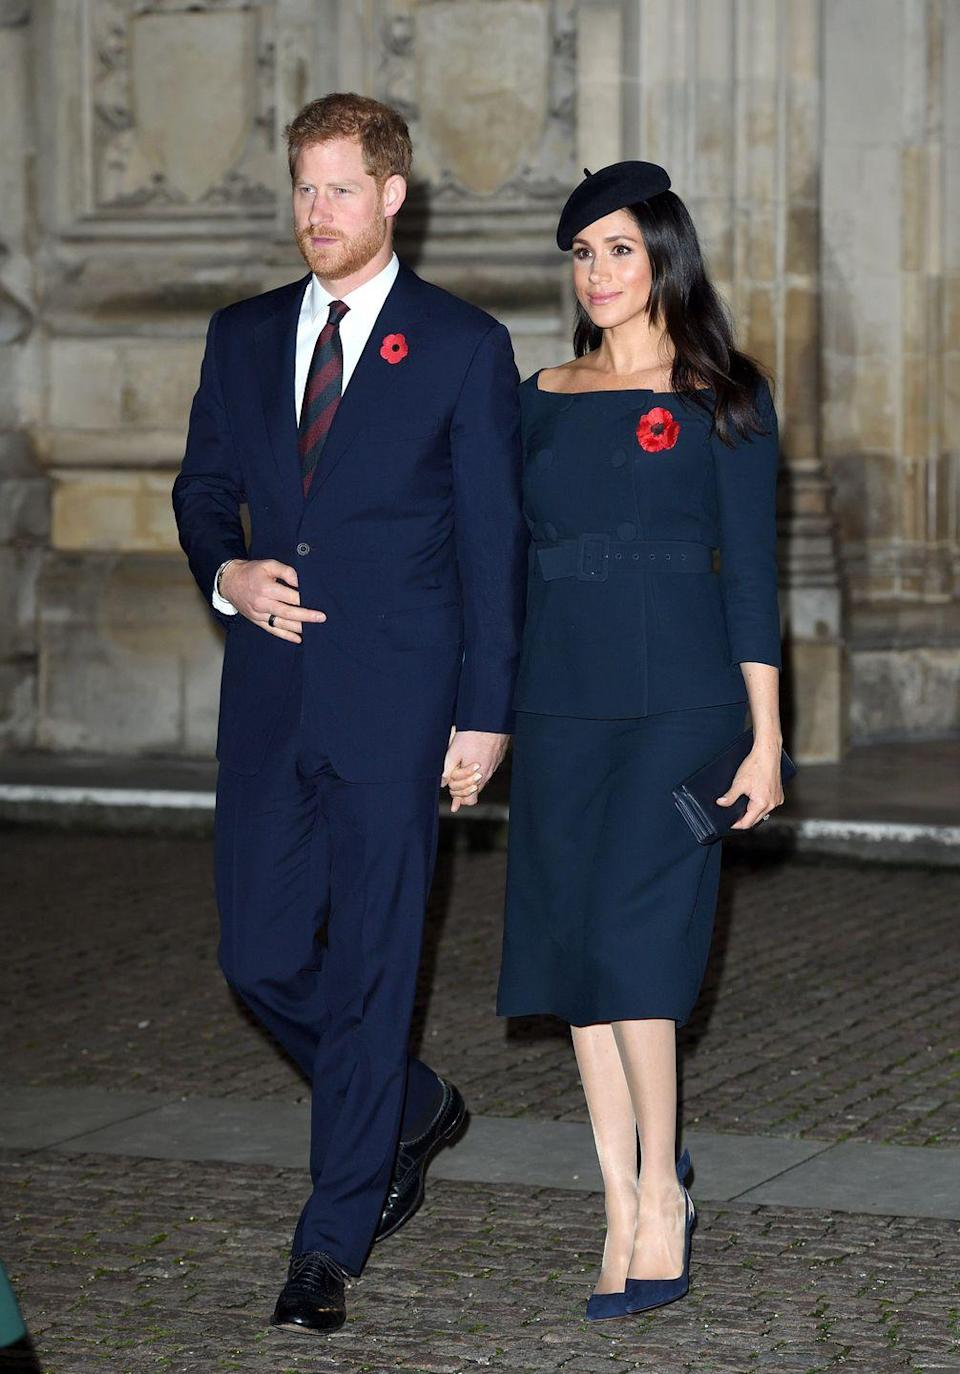 """<p>The Duke and Duchess joined other members of the royal family at Westminster Abbey for <a href=""""https://www.townandcountrymag.com/style/fashion-trends/a24851110/meghan-markle-navy-blue-wwi-remembrance-service-photos/"""" rel=""""nofollow noopener"""" target=""""_blank"""" data-ylk=""""slk:a final Armistice Day service."""" class=""""link rapid-noclick-resp"""">a final Armistice Day service.</a> The Duchess wore a navy skirt and shoulder-skimming peplum top for the event, again with a large poppy pin.</p>"""